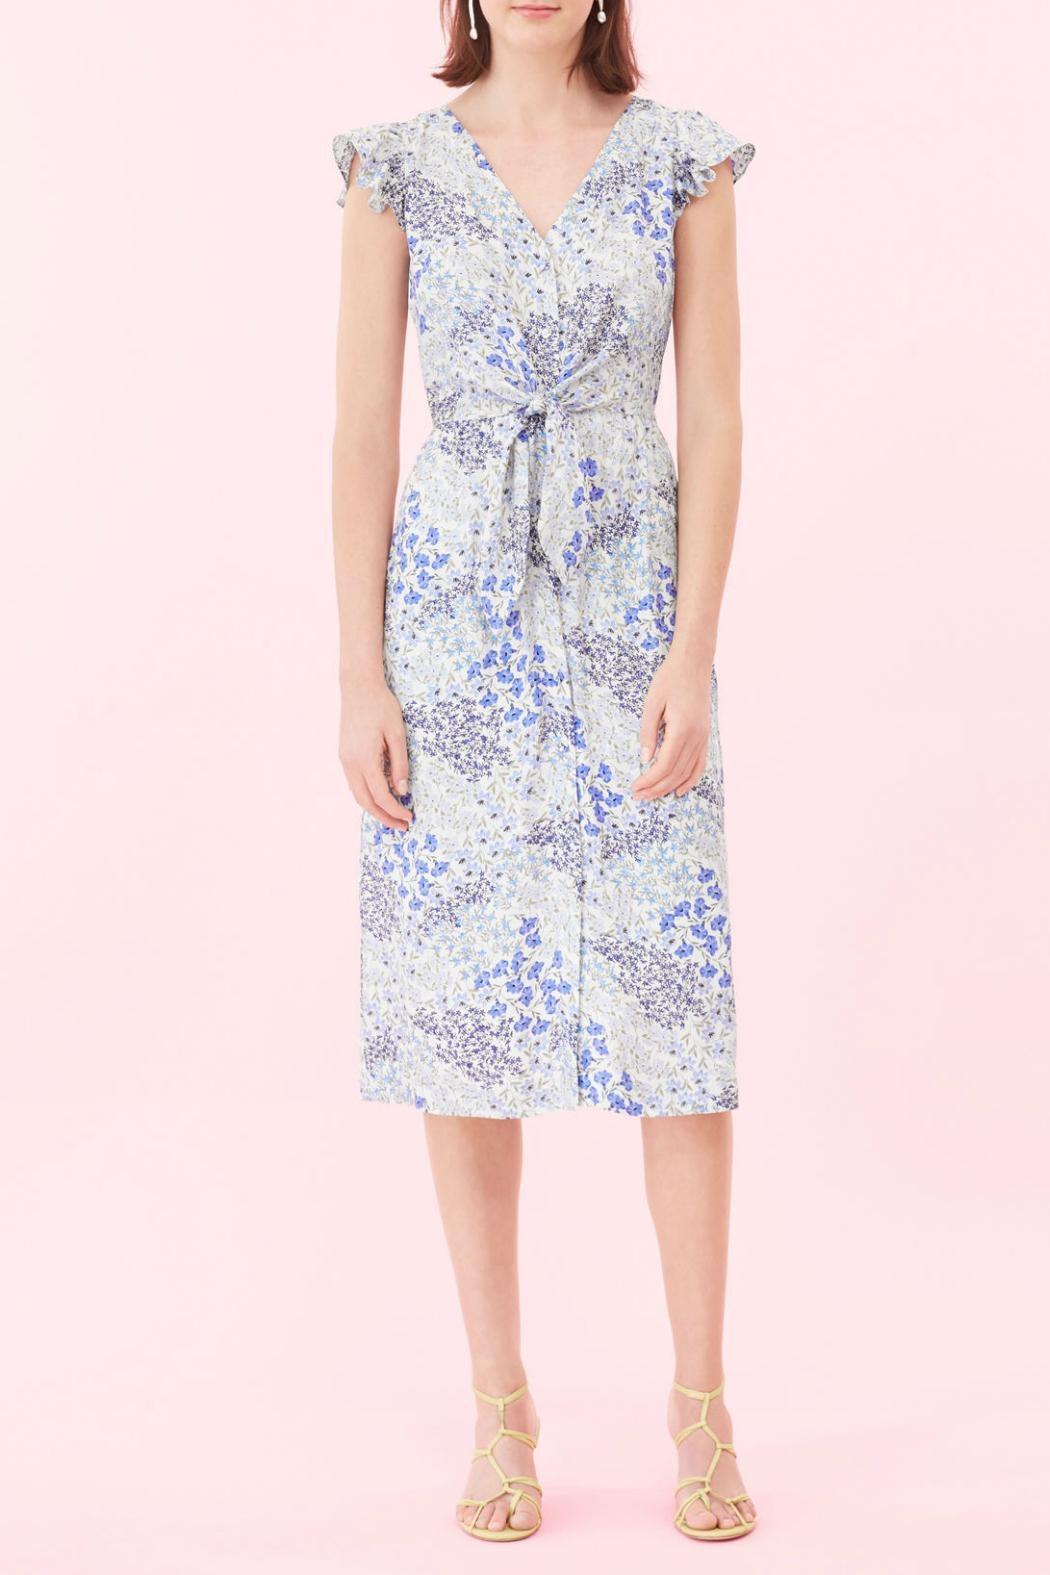 Rebecca Taylor Ava Tie Dress - Side Cropped Image